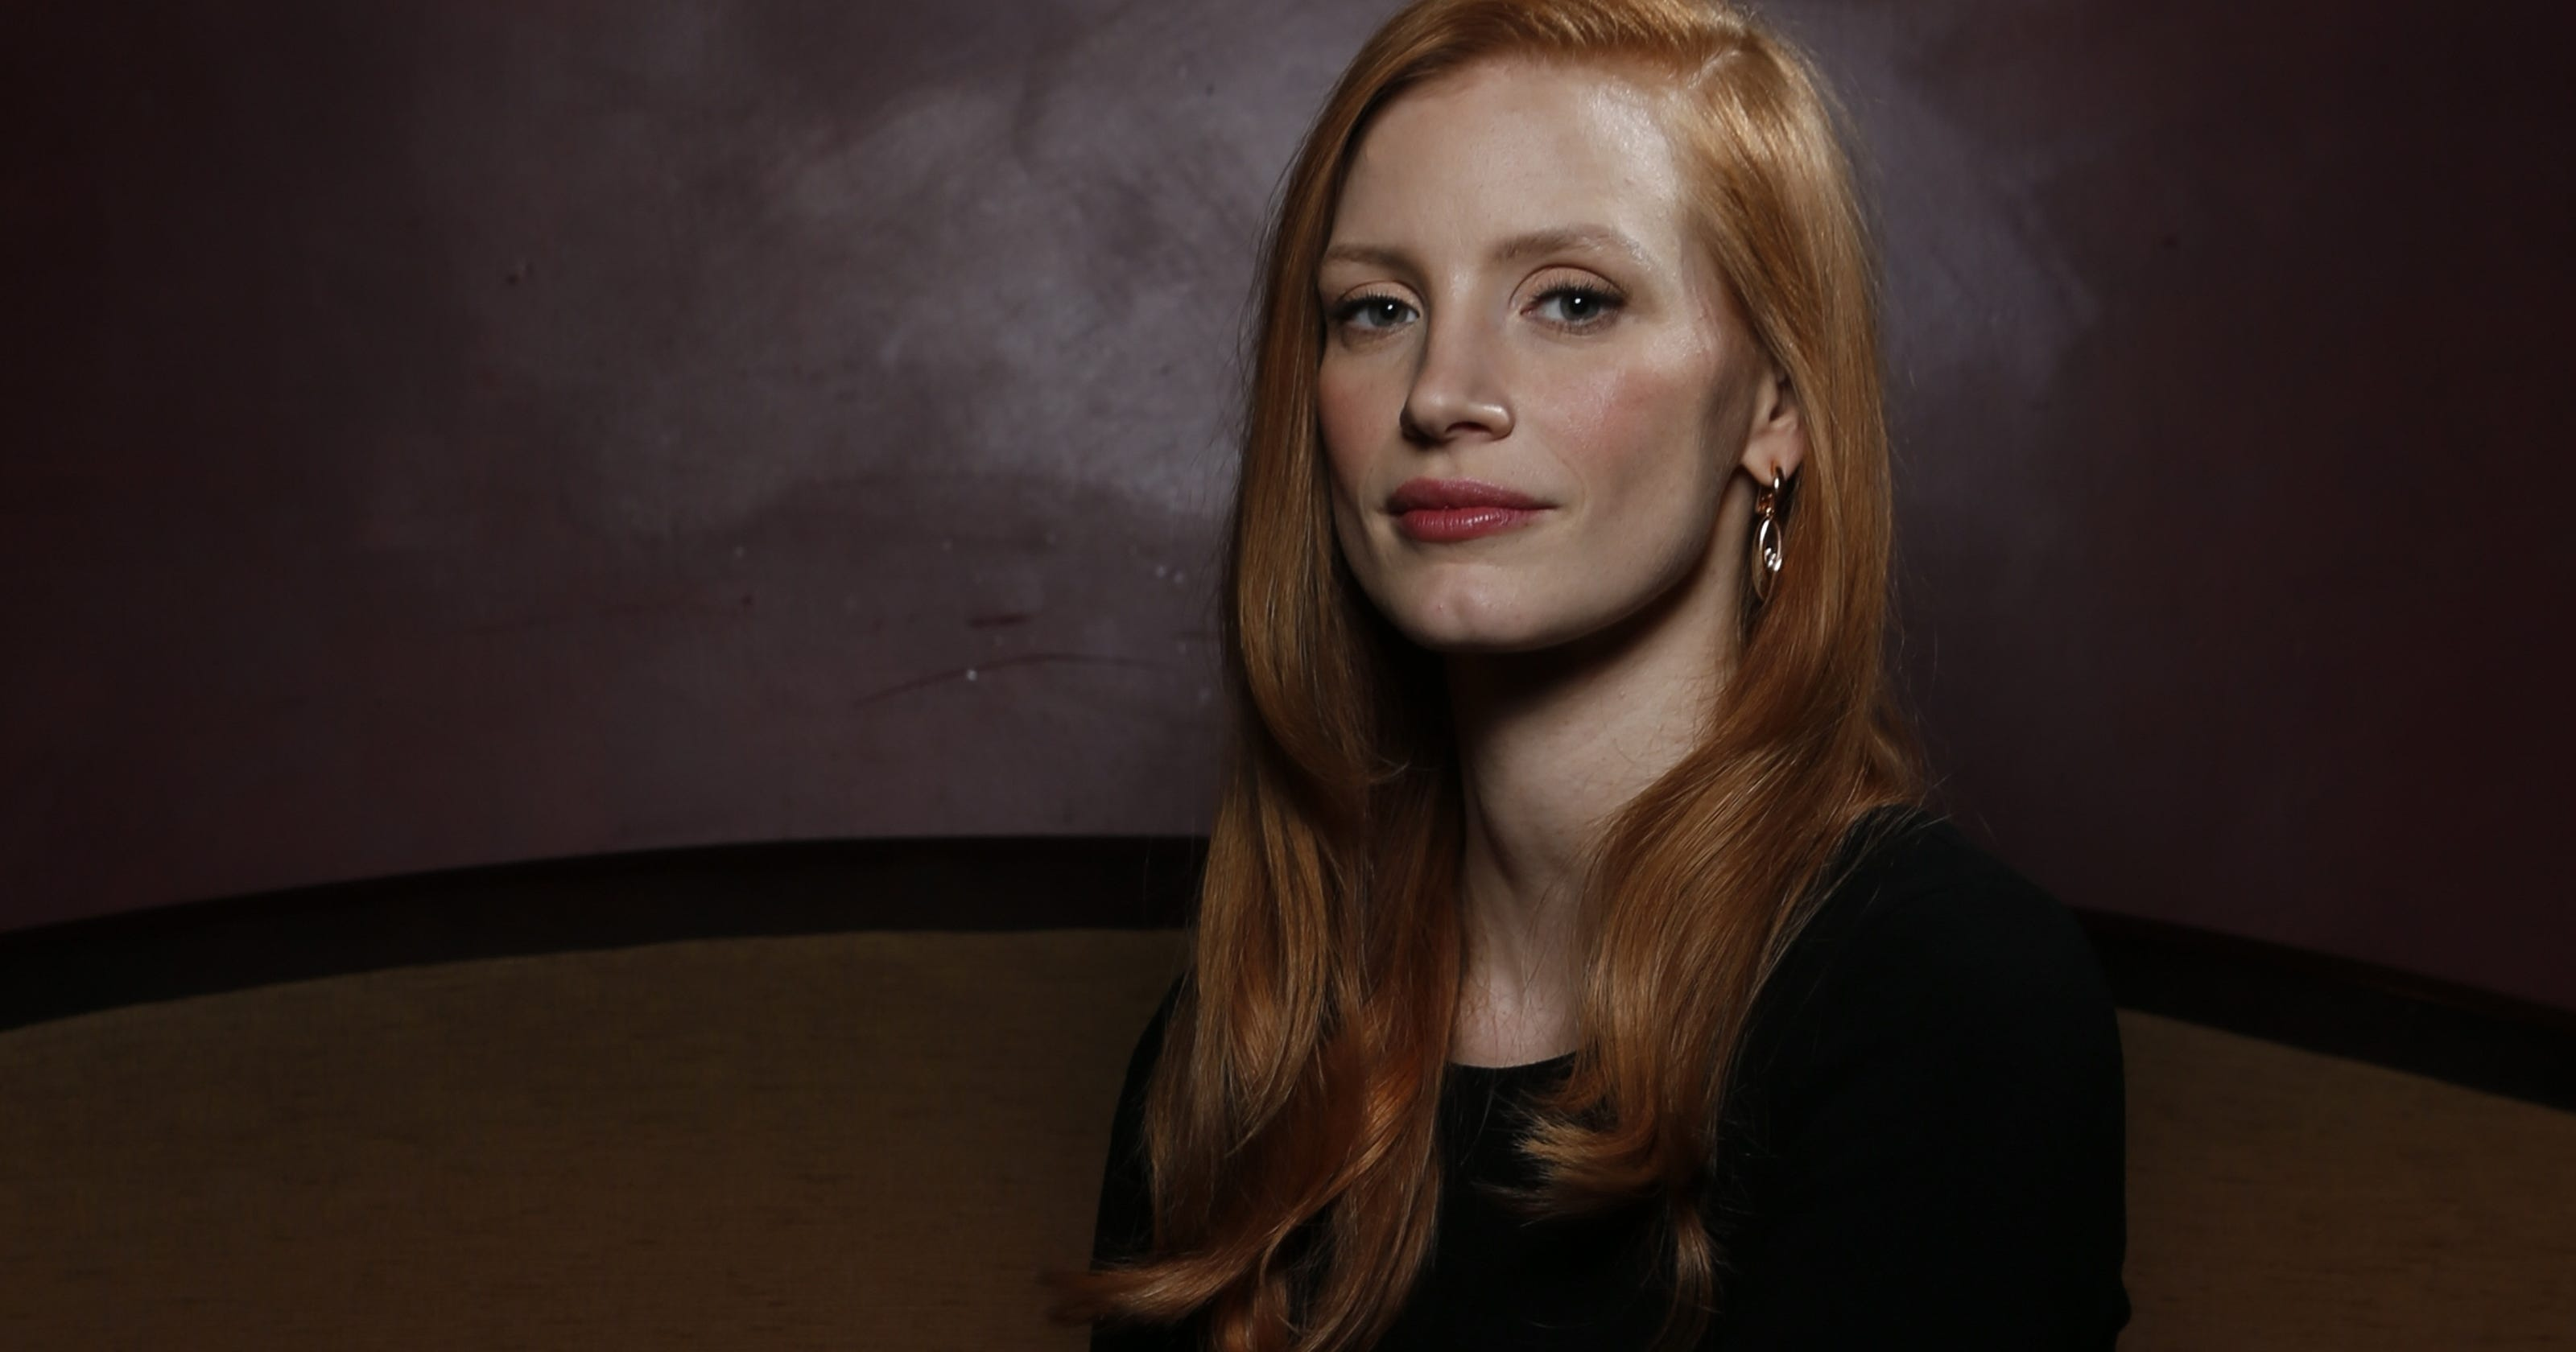 Jessica Chastain is on the clock Jessica Chastain